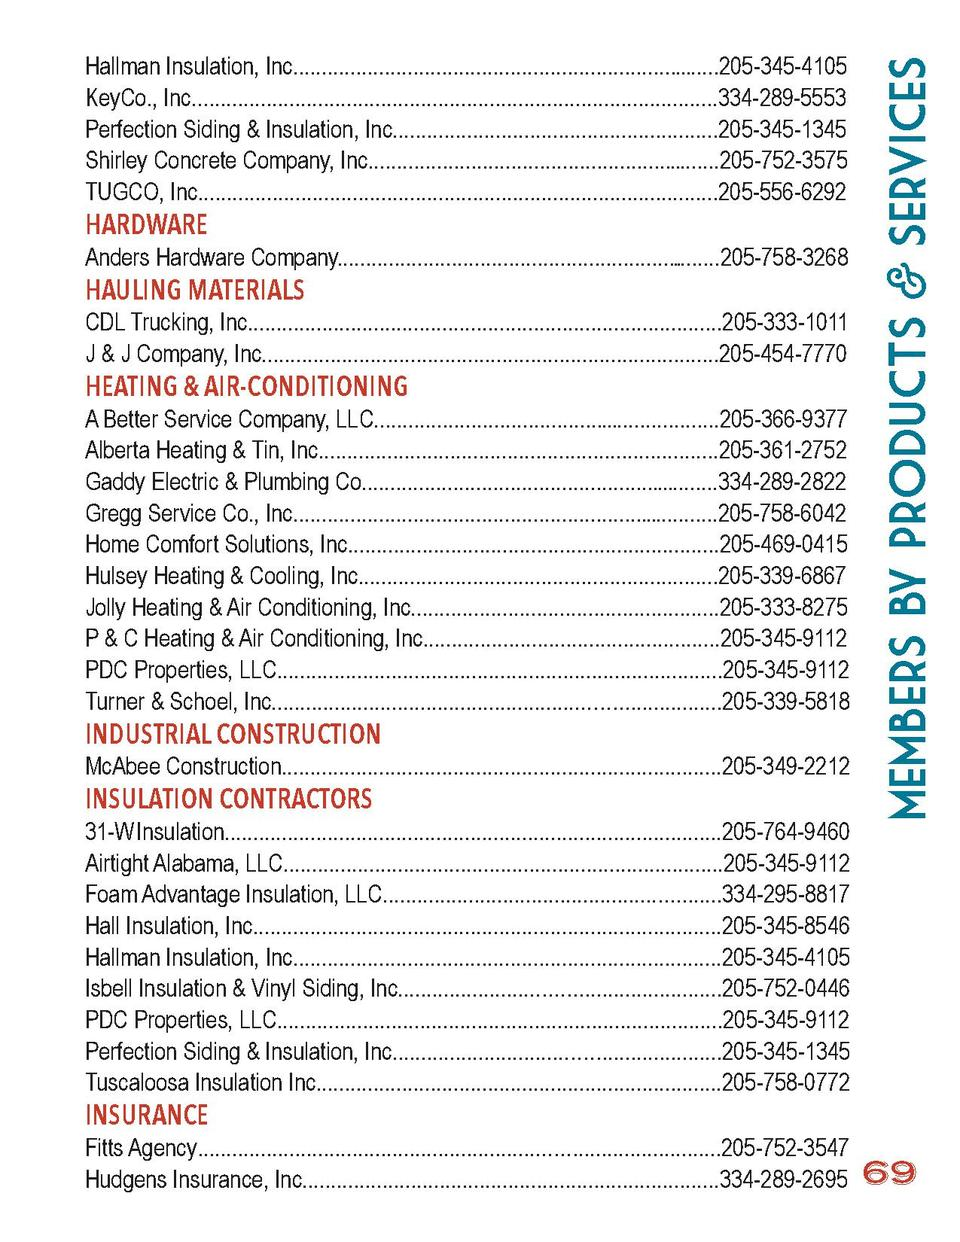 members by Products   Services  Hallman Insulation, Inc......................................................................